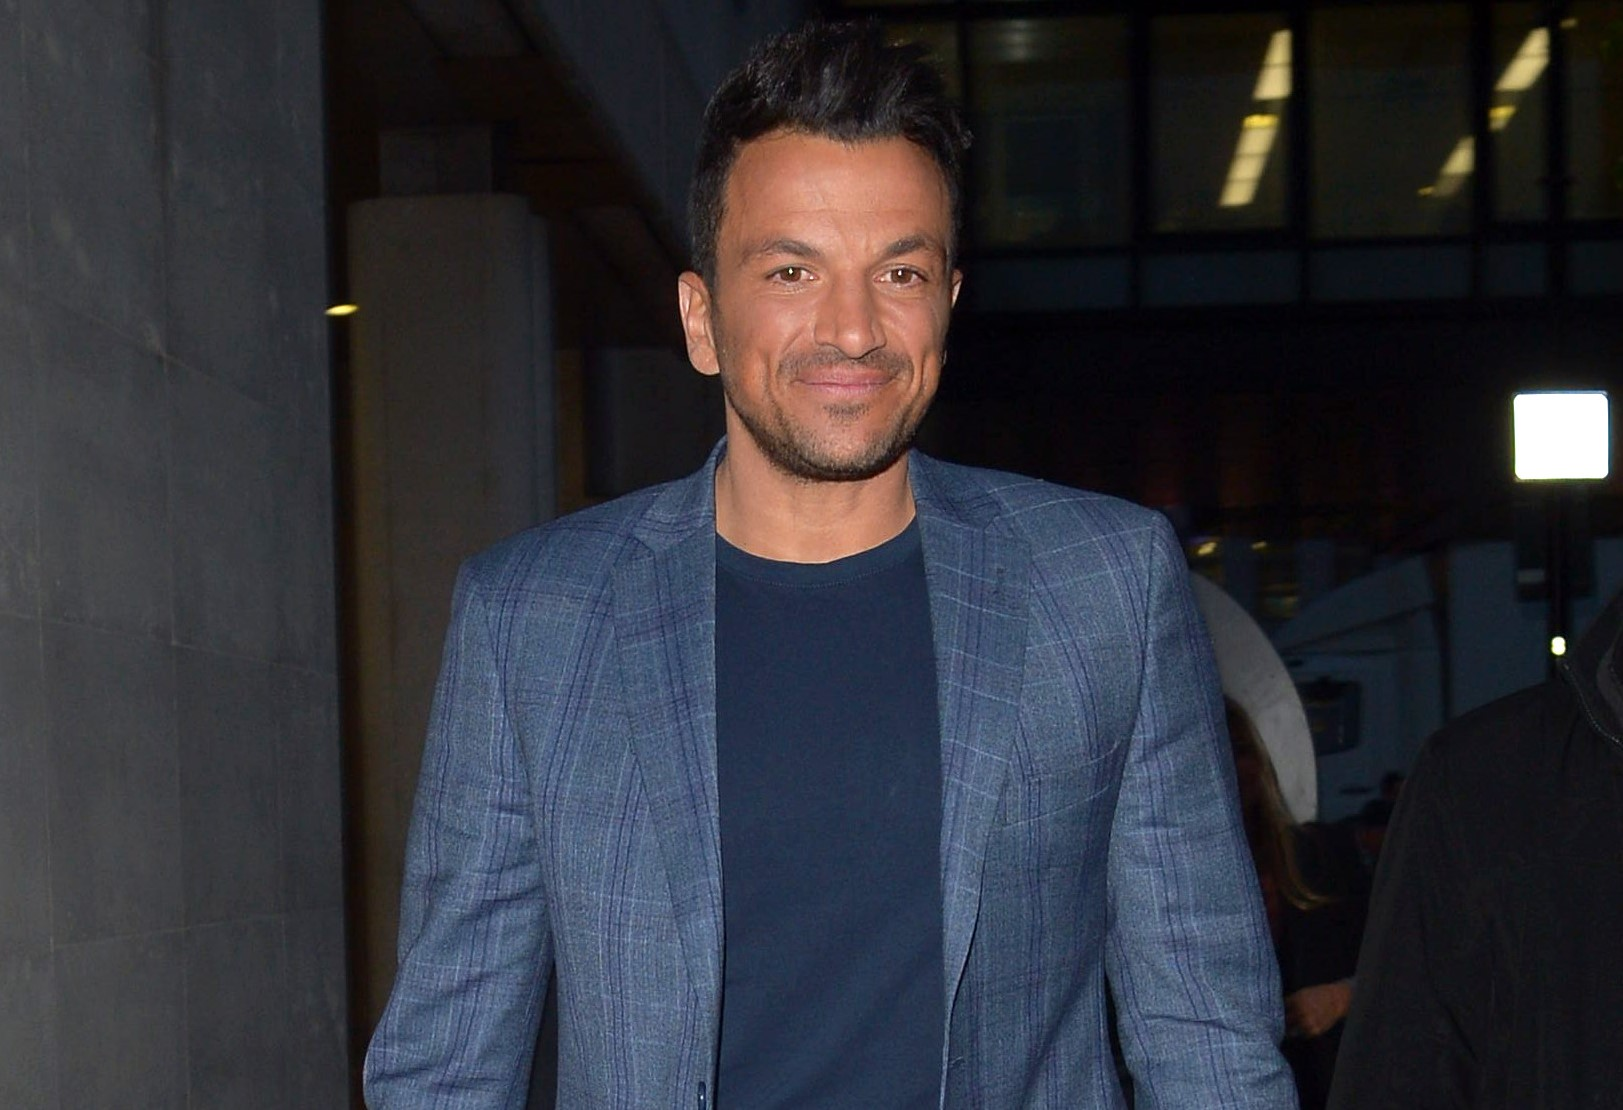 Peter Andre pays emotional tribute to late brother Andrew on his birthday